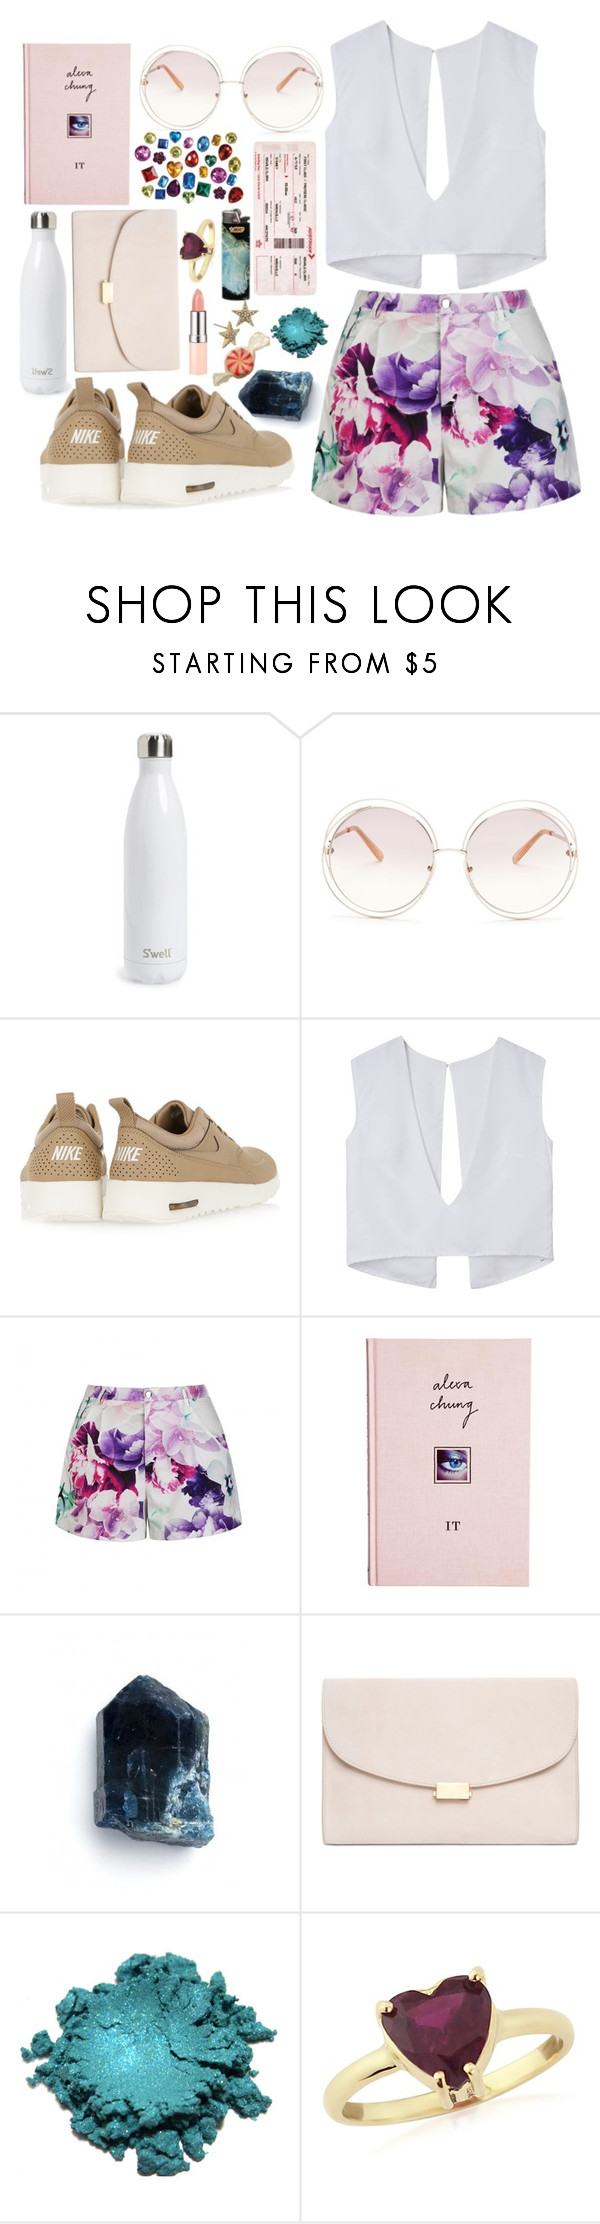 """""""Shorts"""" by lady-wednesday ❤ liked on Polyvore featuring S'well, Chloé, NIKE, Ally Fashion, ASOS, Mansur Gavriel, Krausz Jewellery, Betsey Johnson and printedshorts"""